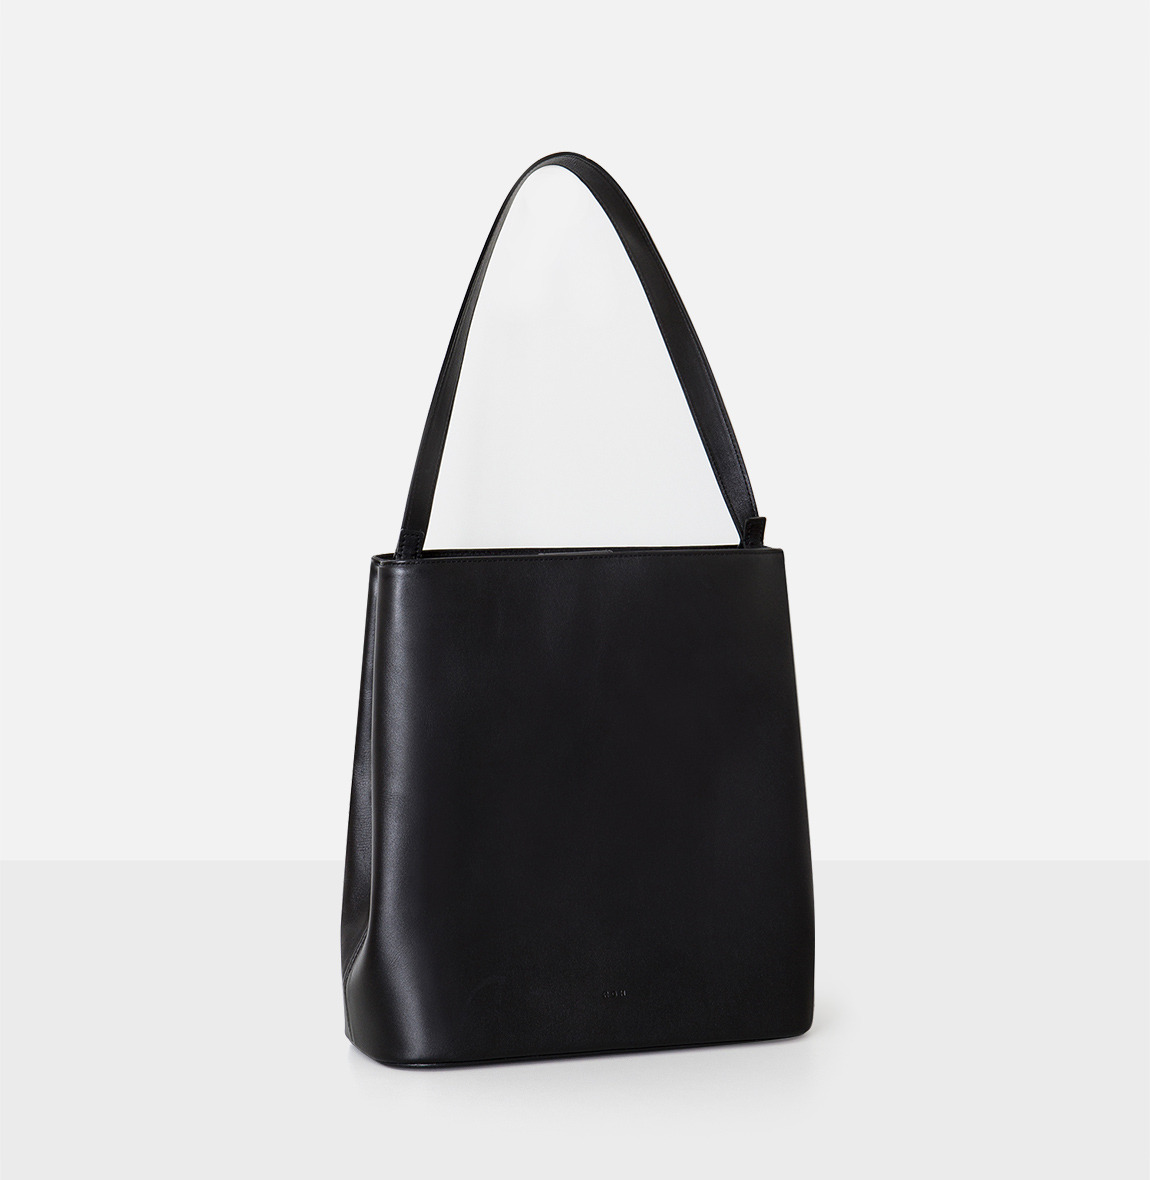 ROH Aline shoulder bag Black